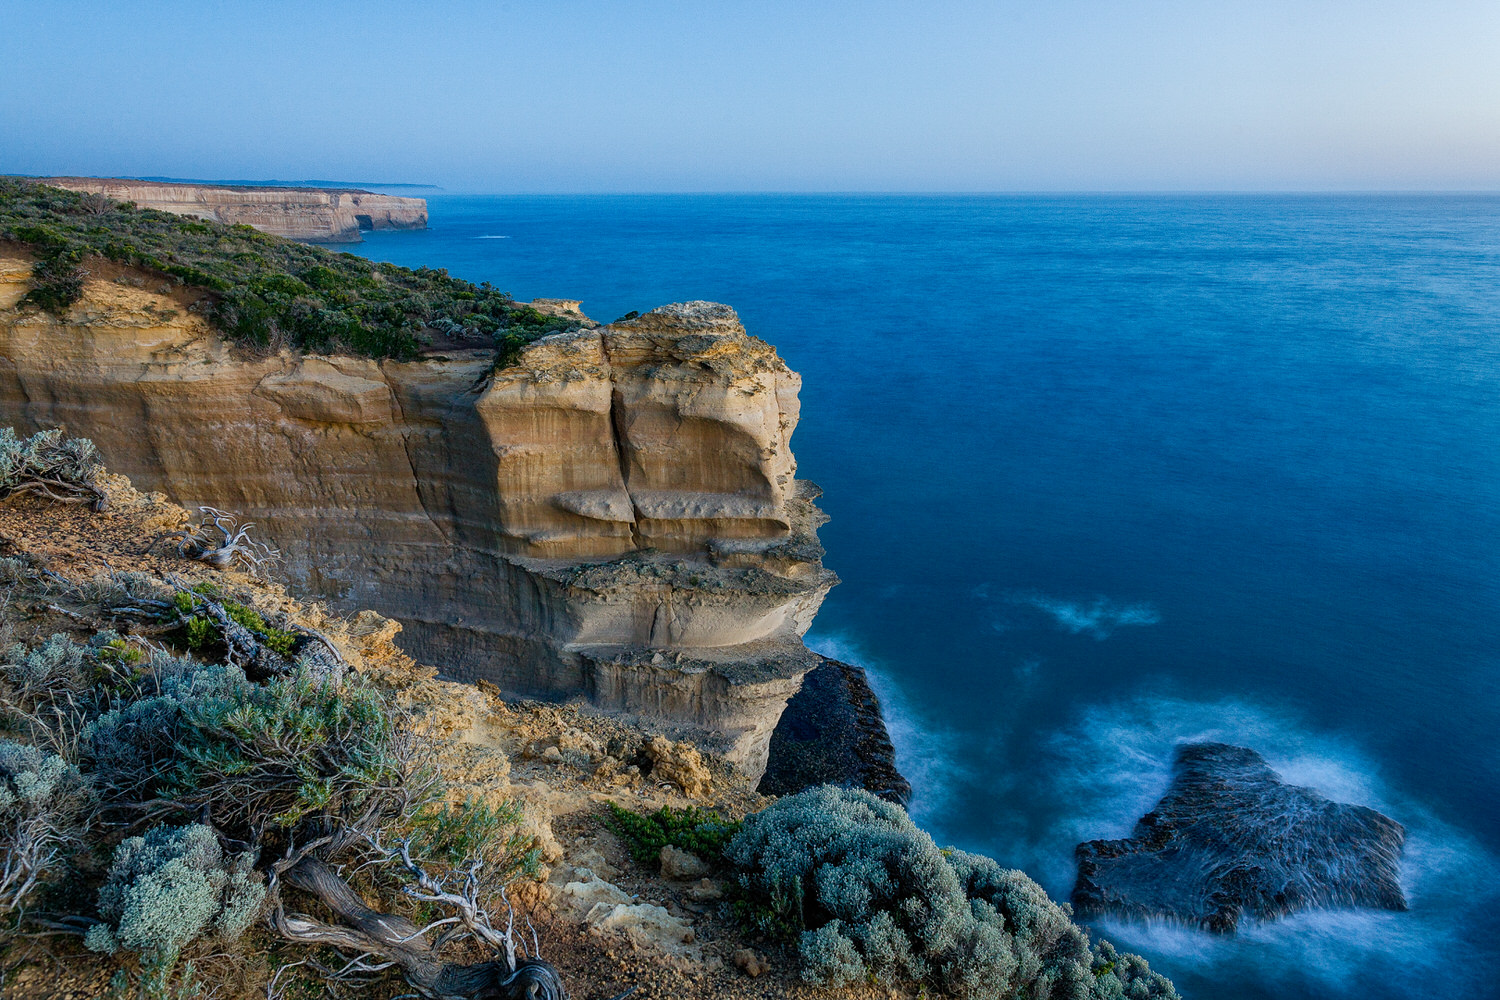 A view of    sandstone cliffs    and sea at days end in the    Port Campbell National Park    along the    Great Ocean Road    in Australia.